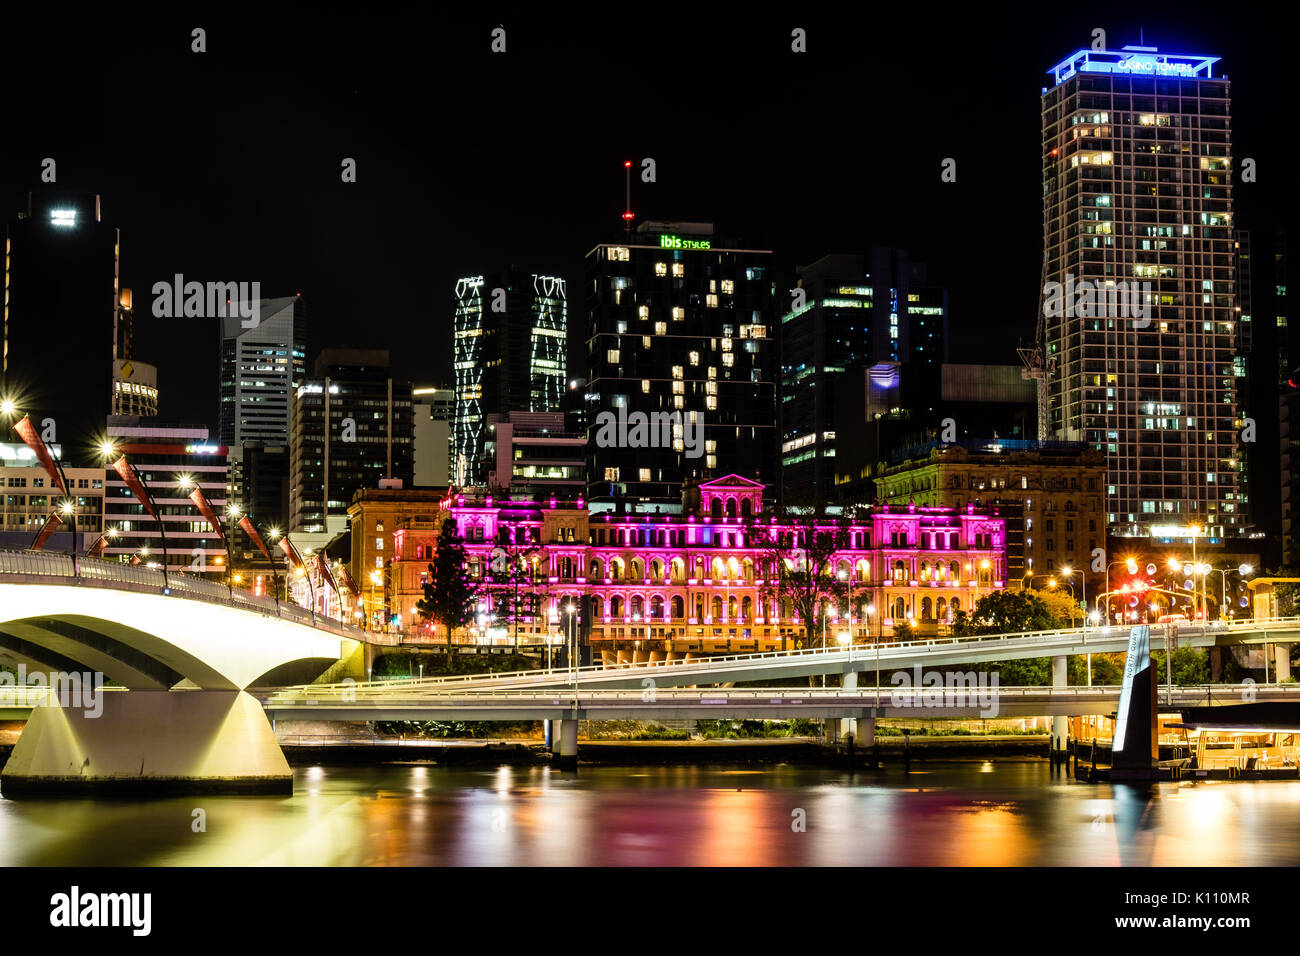 View to Brisbane river at night - Stock Image